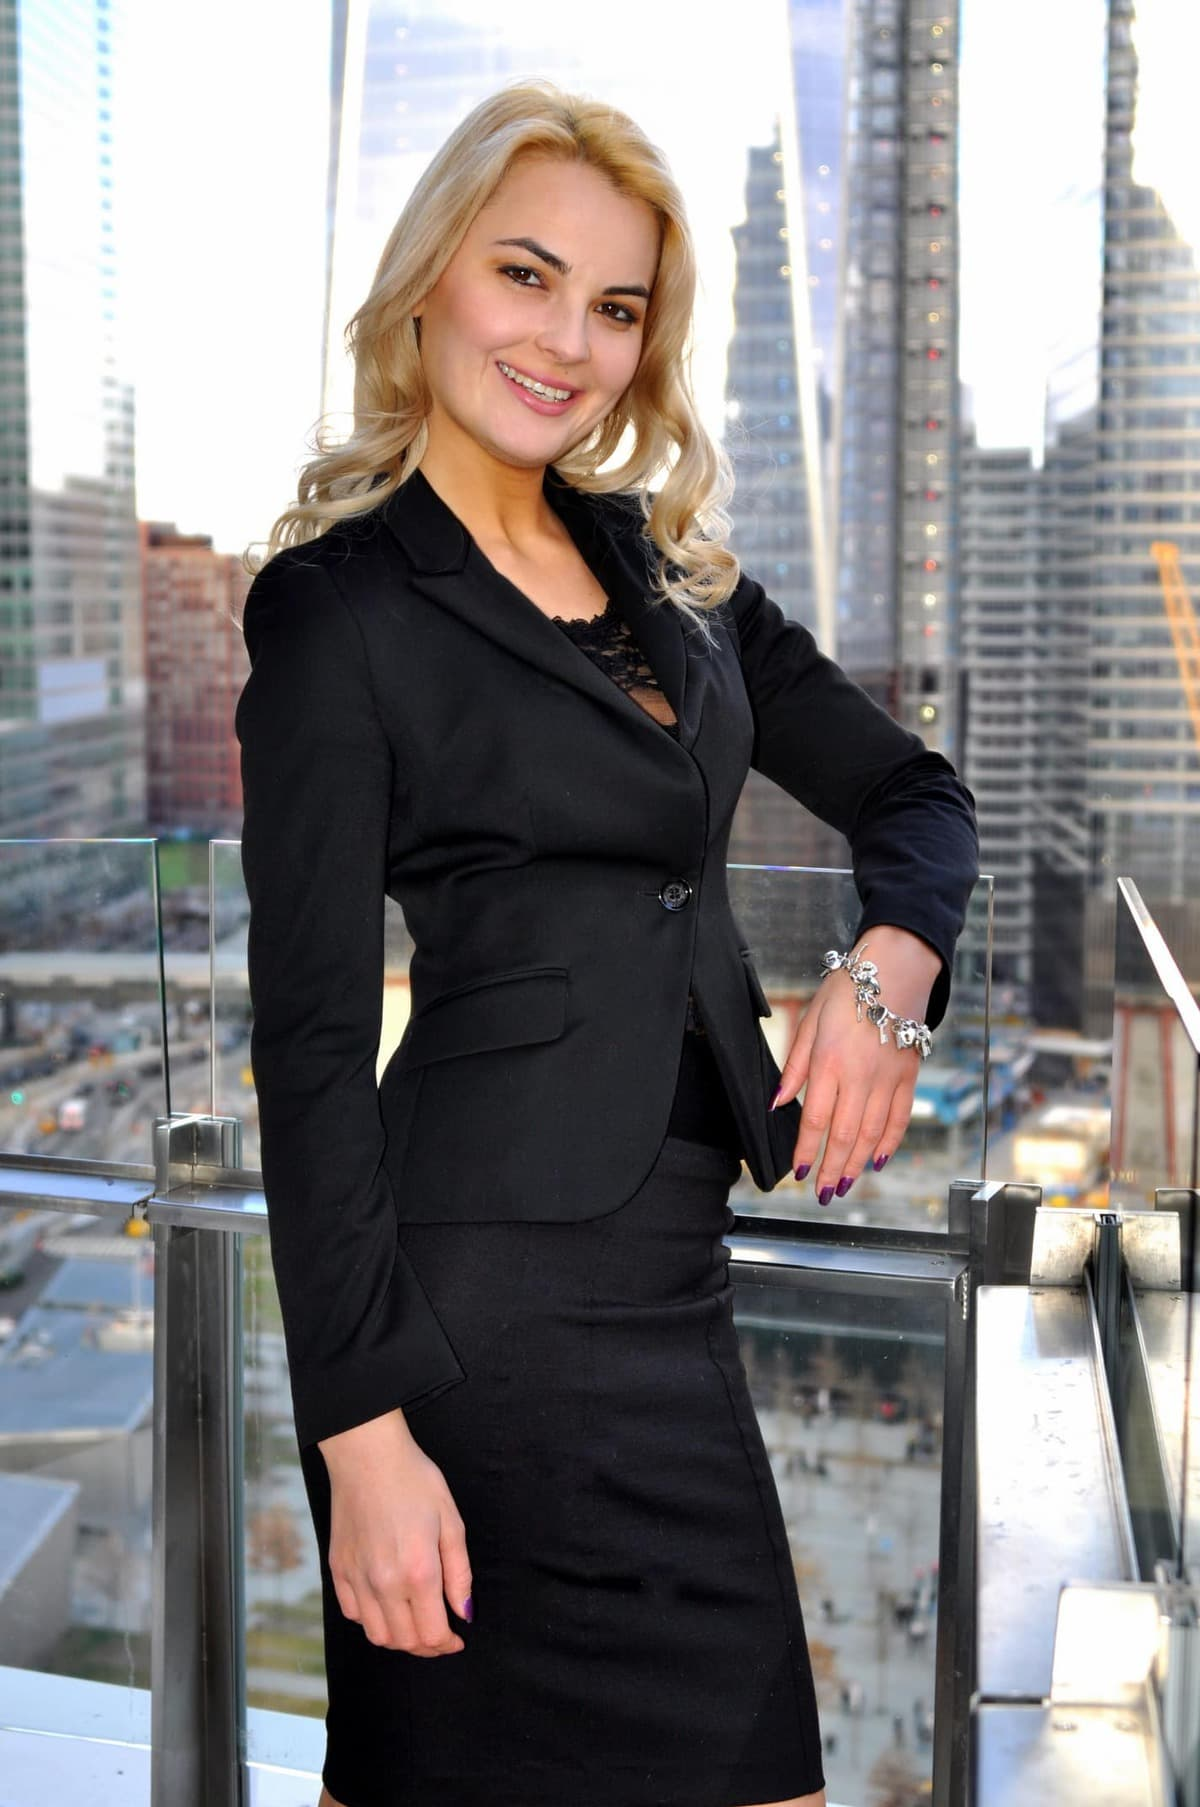 adriana  trade show models event staffing promotional modeling agency